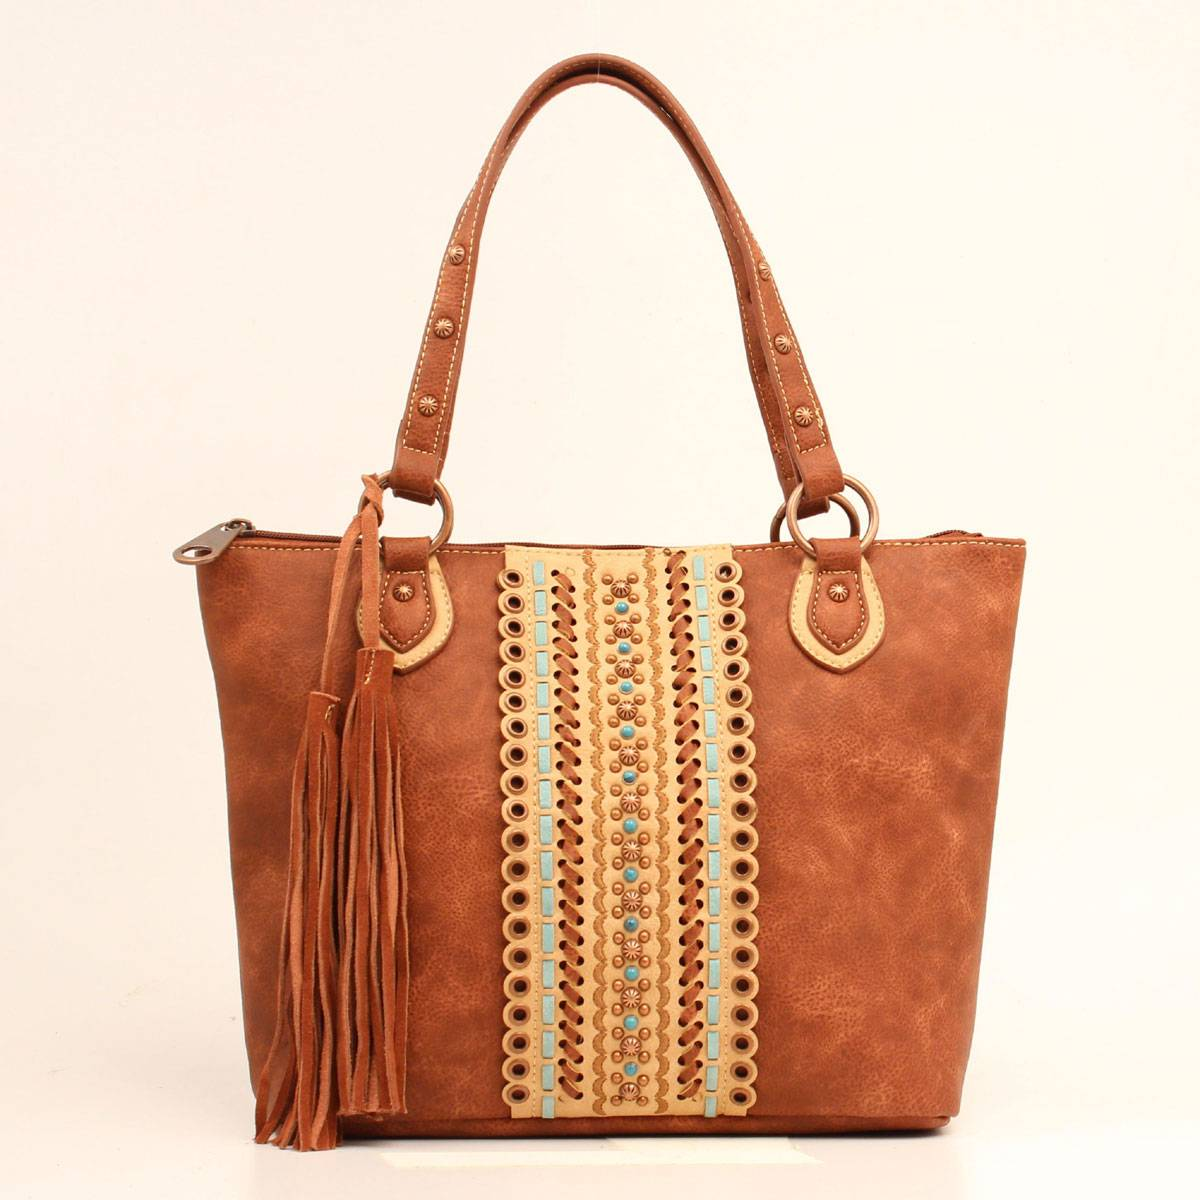 Image result for Authentic Leather Tote Bags Busted